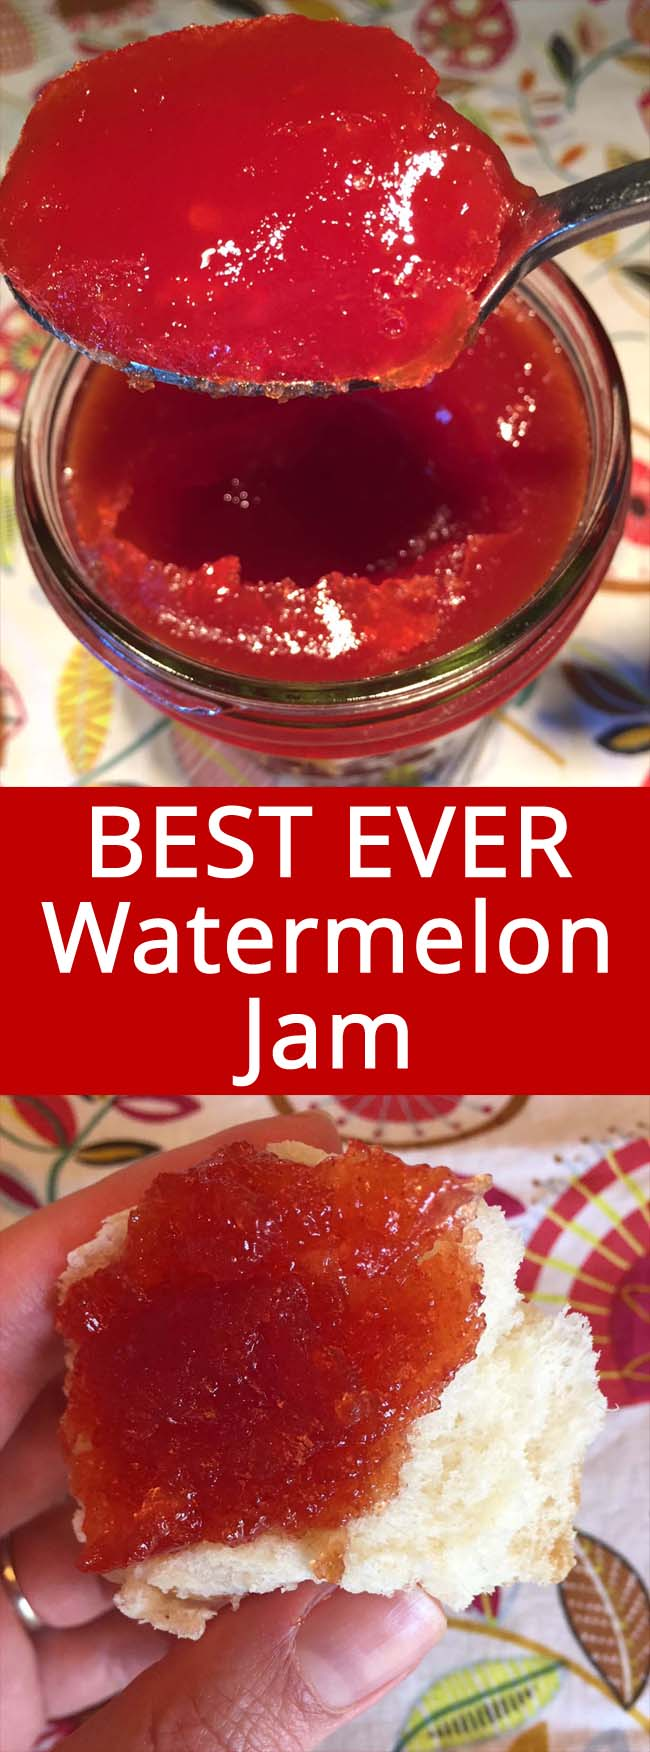 This watermelon jam recipe is amazing! Perfectly set jam that tastes like extremely concentrated watermelon - mmmmm! Super easy to make, perfect for beginners! This is the only watermelon jam recipe you'll ever need!